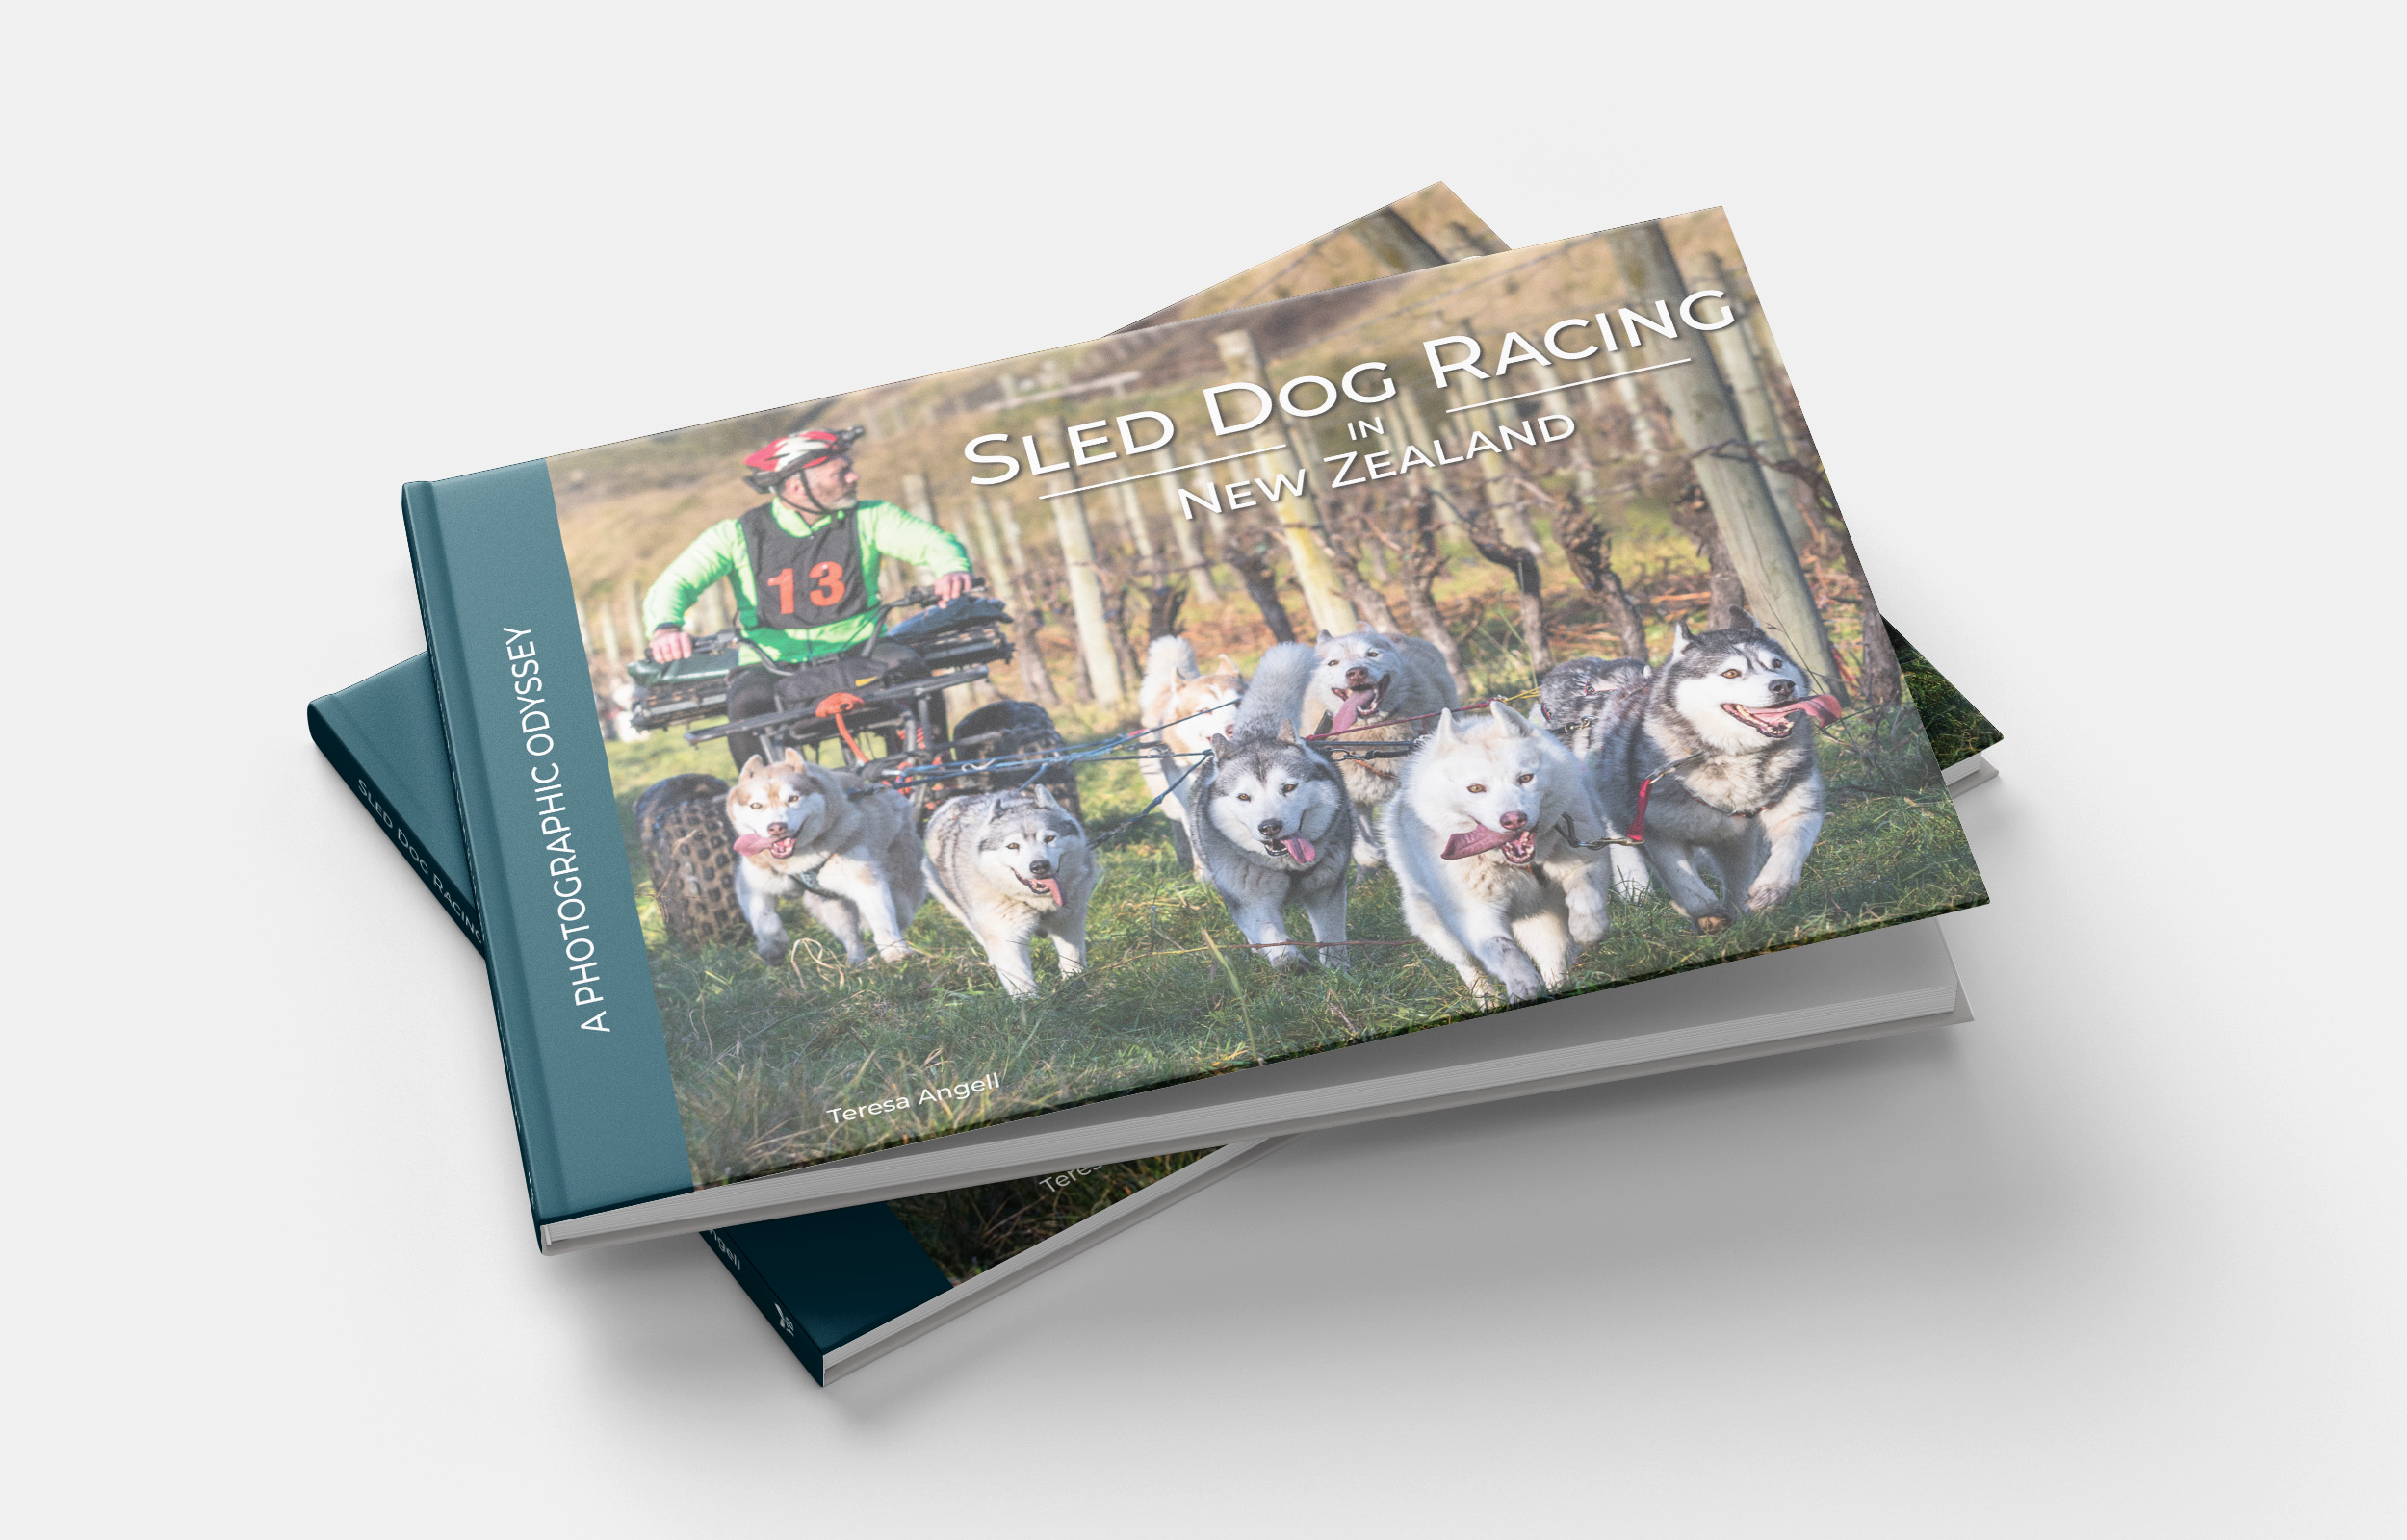 Sled Dog Racing in New Zealand